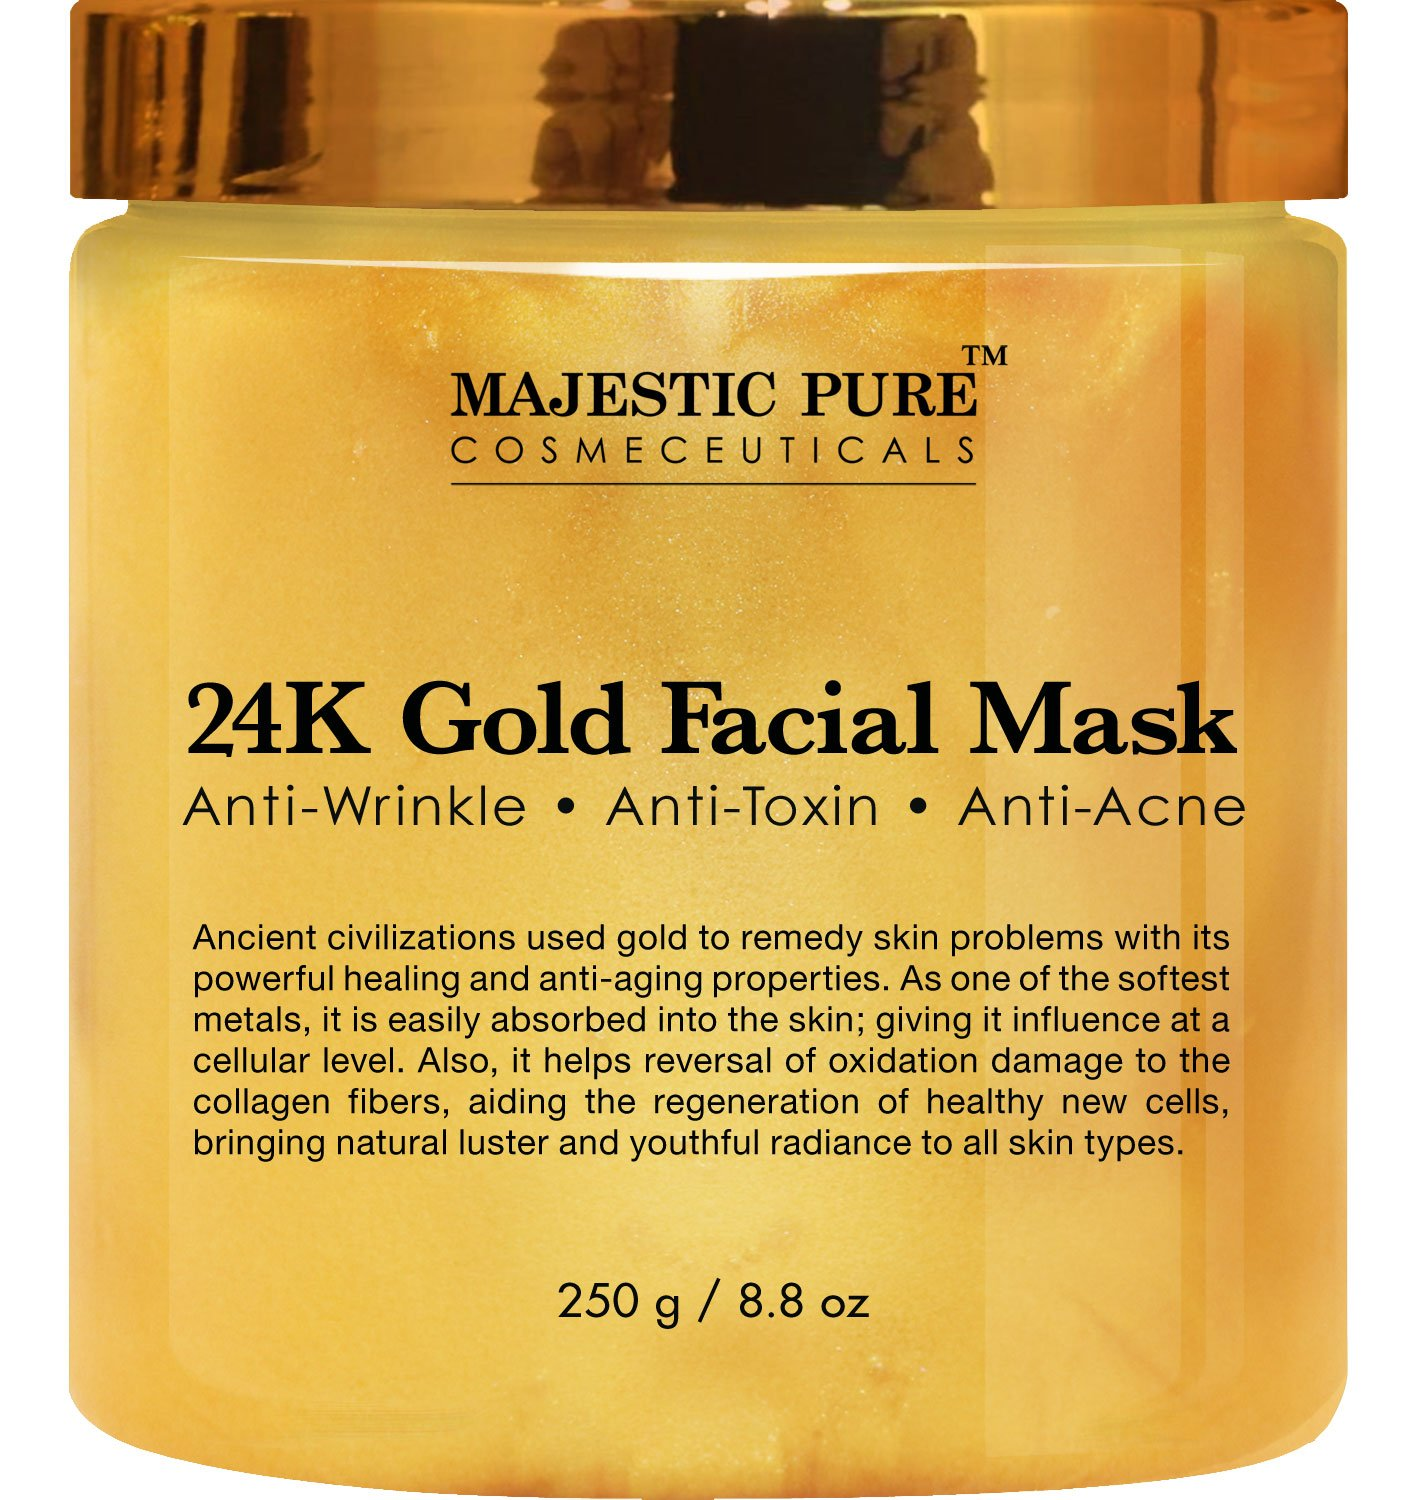 Majestic Pure Gold Facial Mask, Ancient Gold Face Mask Formula Reduces the Appearances of Wrinkles and Fine Lines, Helps with Acne and Firming Up Skin- 8.8 Oz